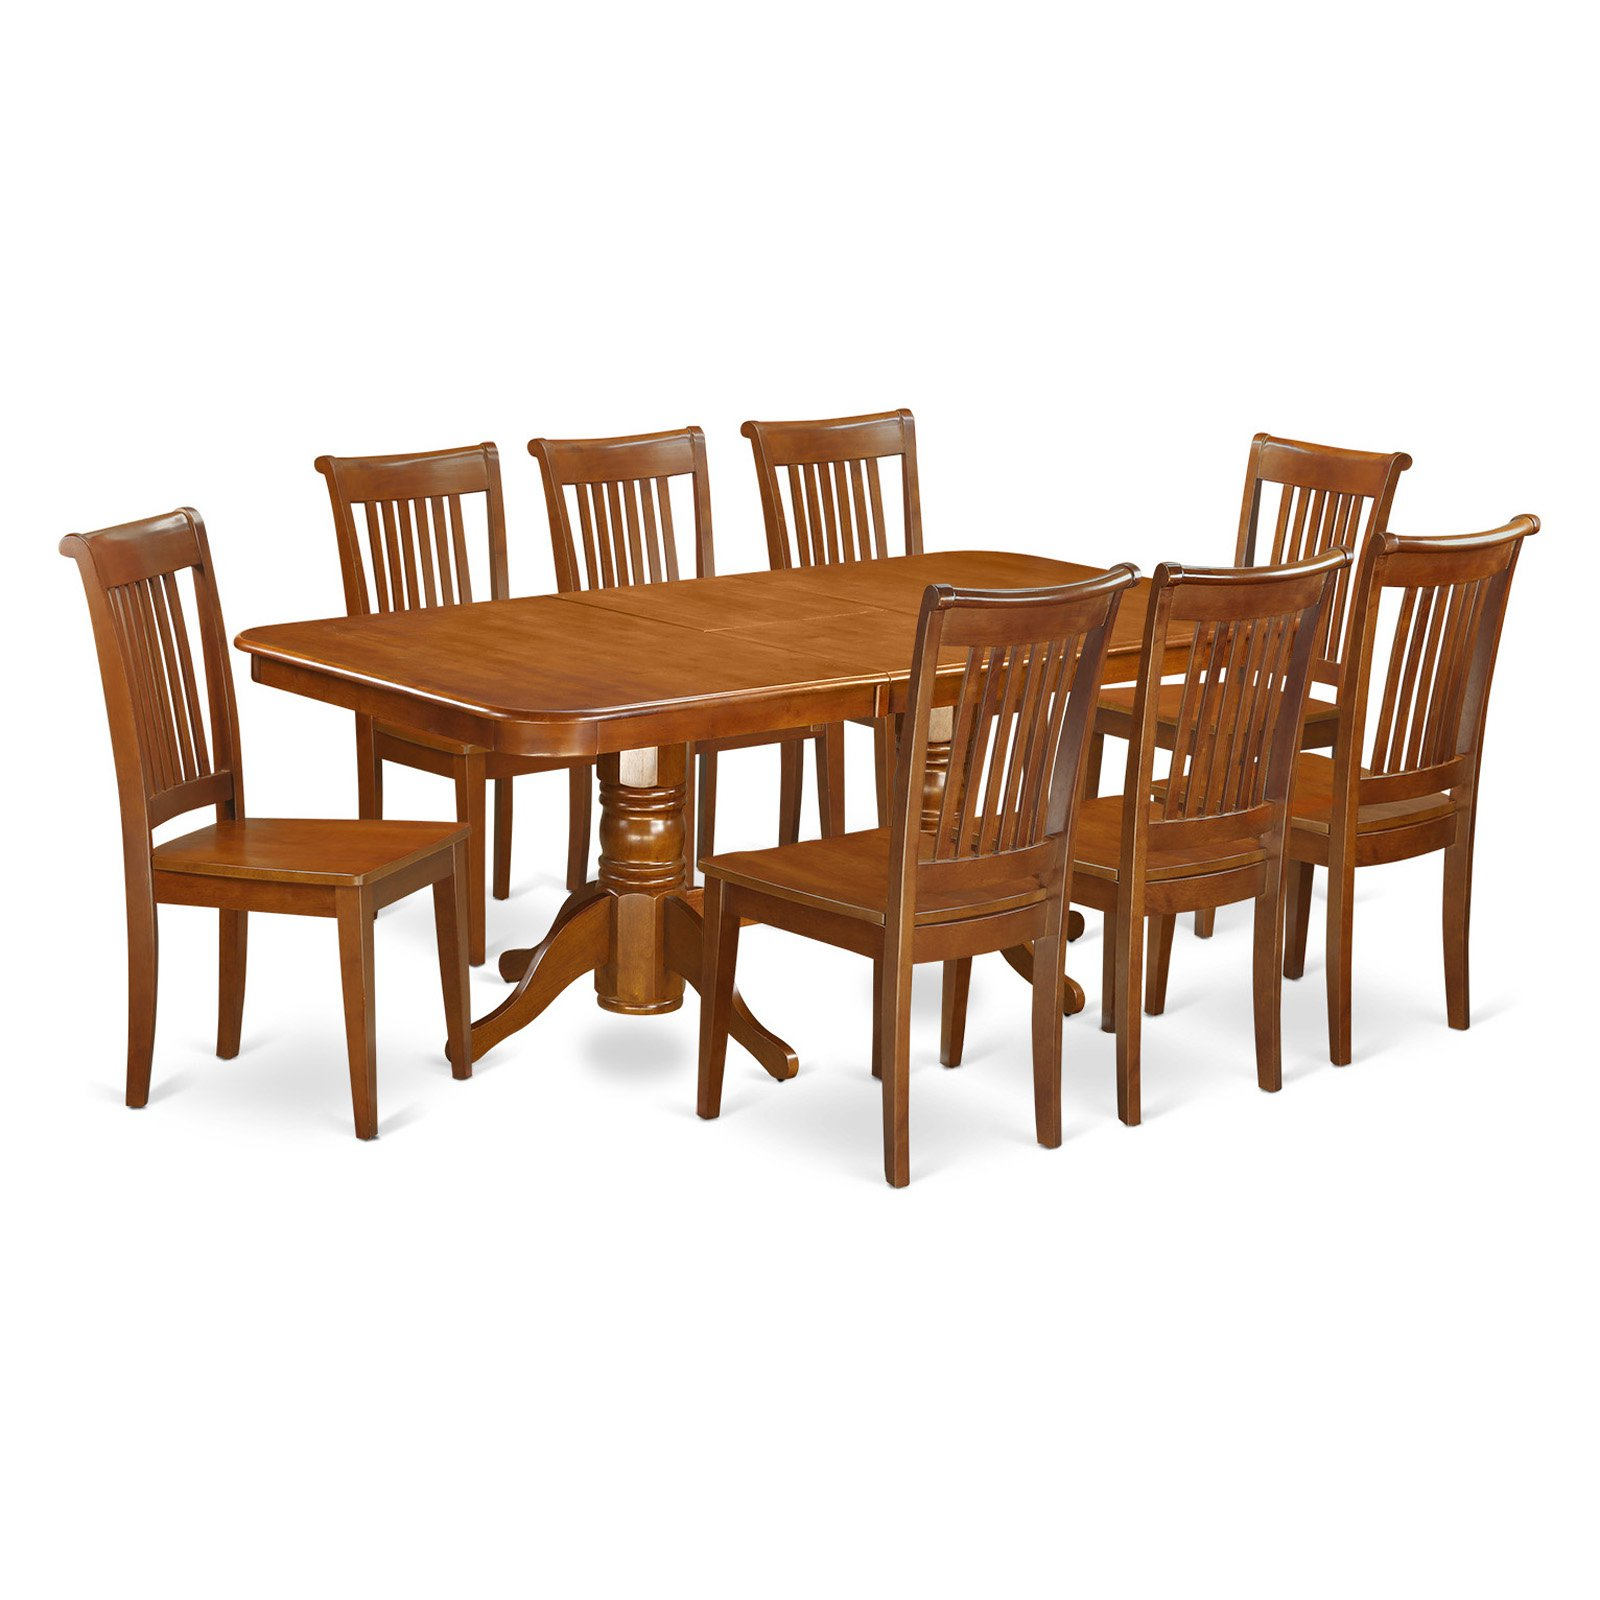 East West Furniture Kenley 9 Piece Dining Table Set with Portland Chairs